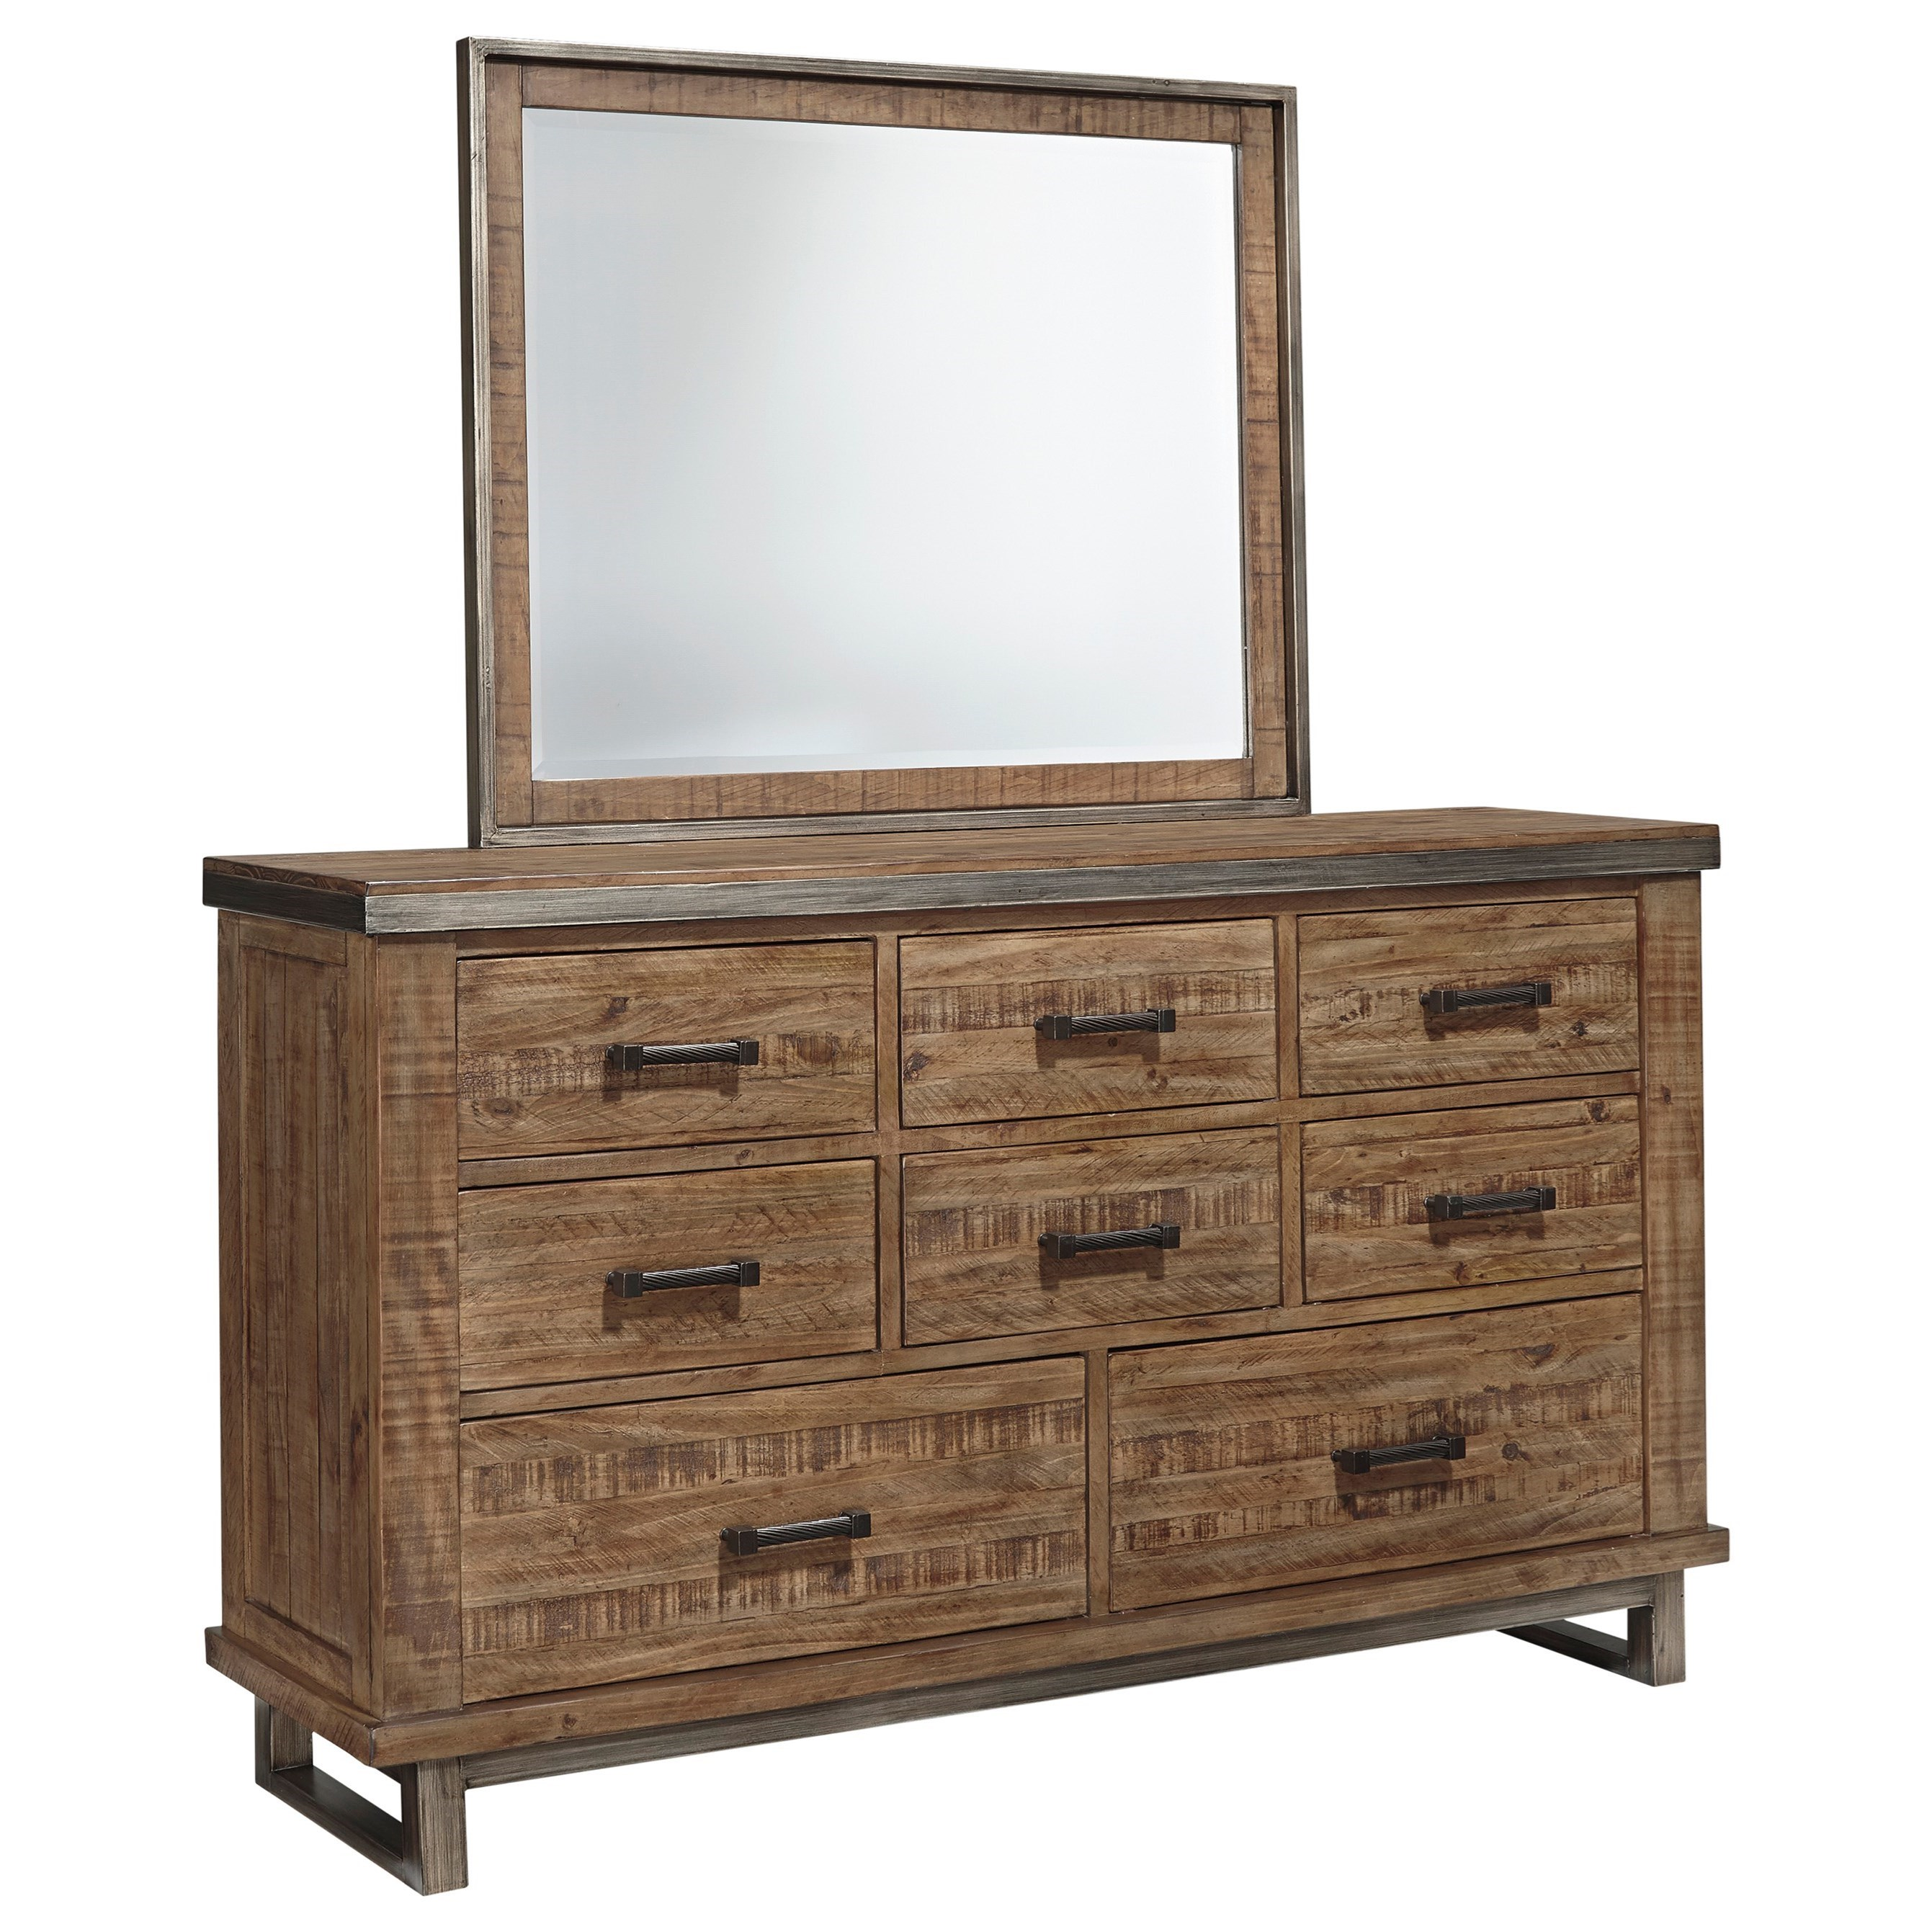 Signature Design by Ashley Dondie Dresser & Bedroom Mirror - Item Number: B663-31+36